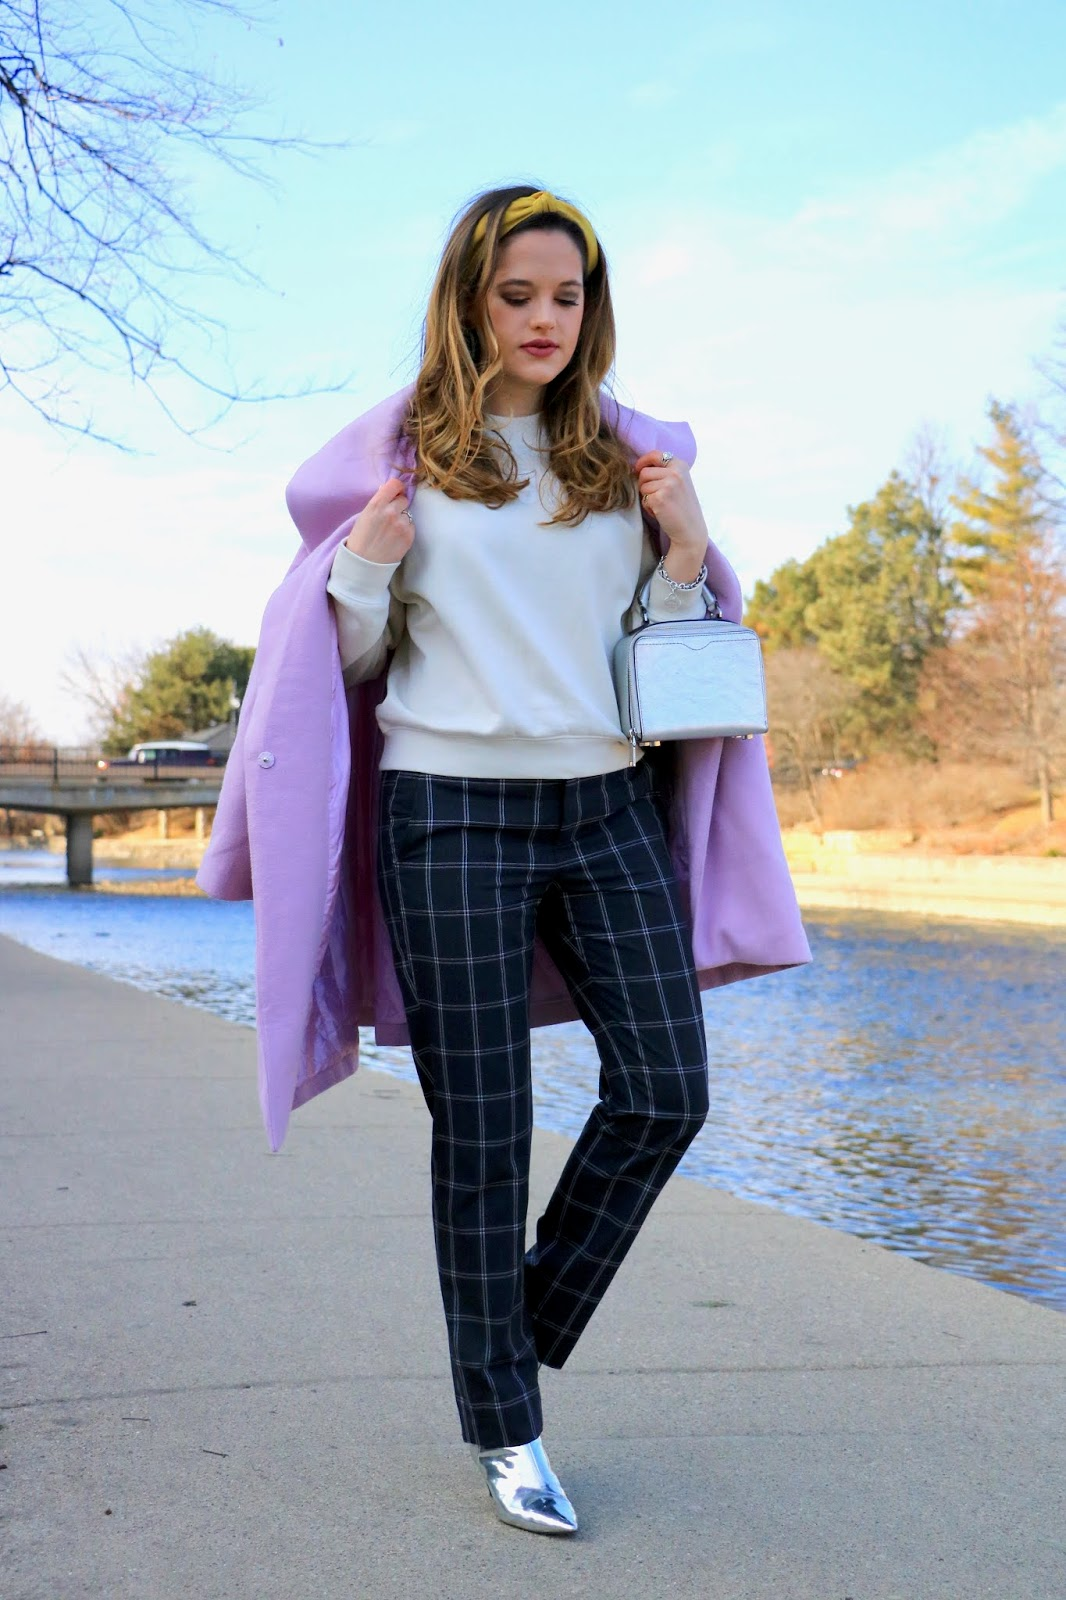 Nyc fashion blogger Kathleen Harper's winter outfit idea for work